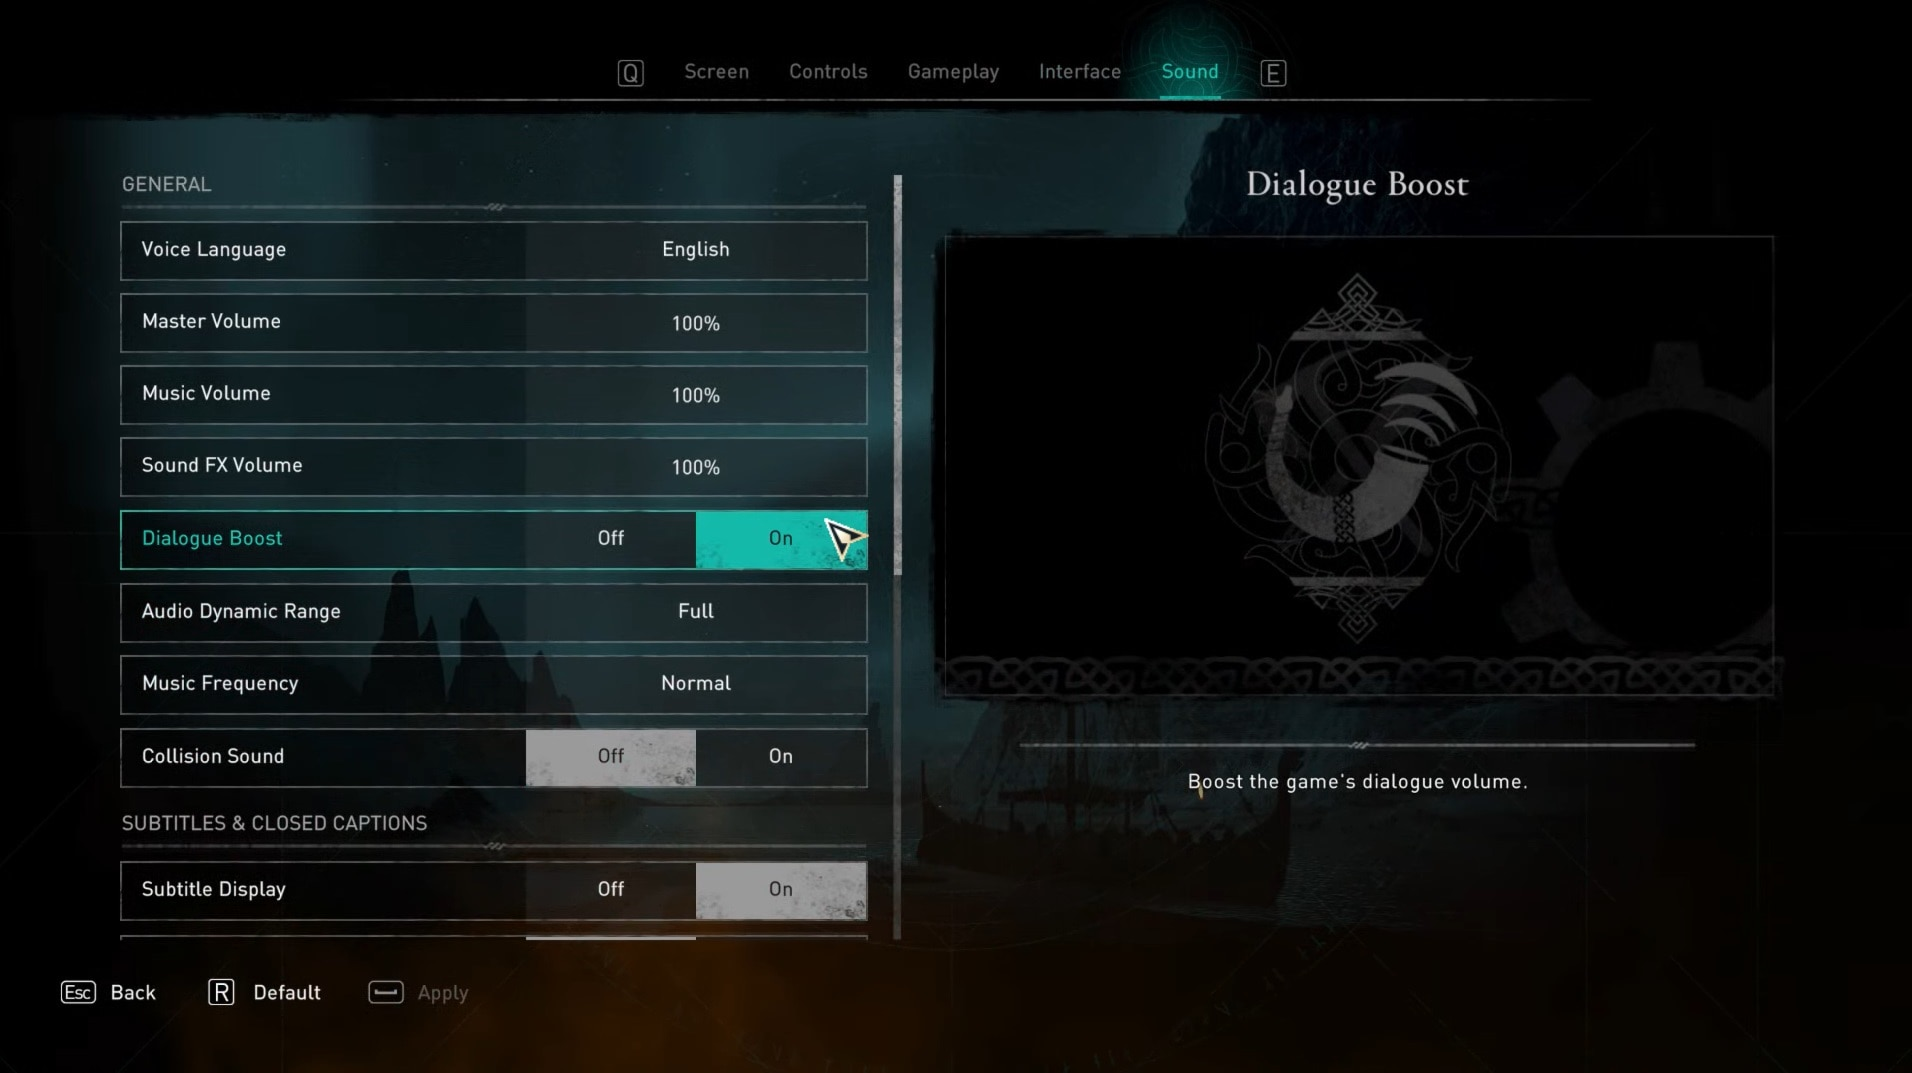 Turning dialogue boost off or on in settings